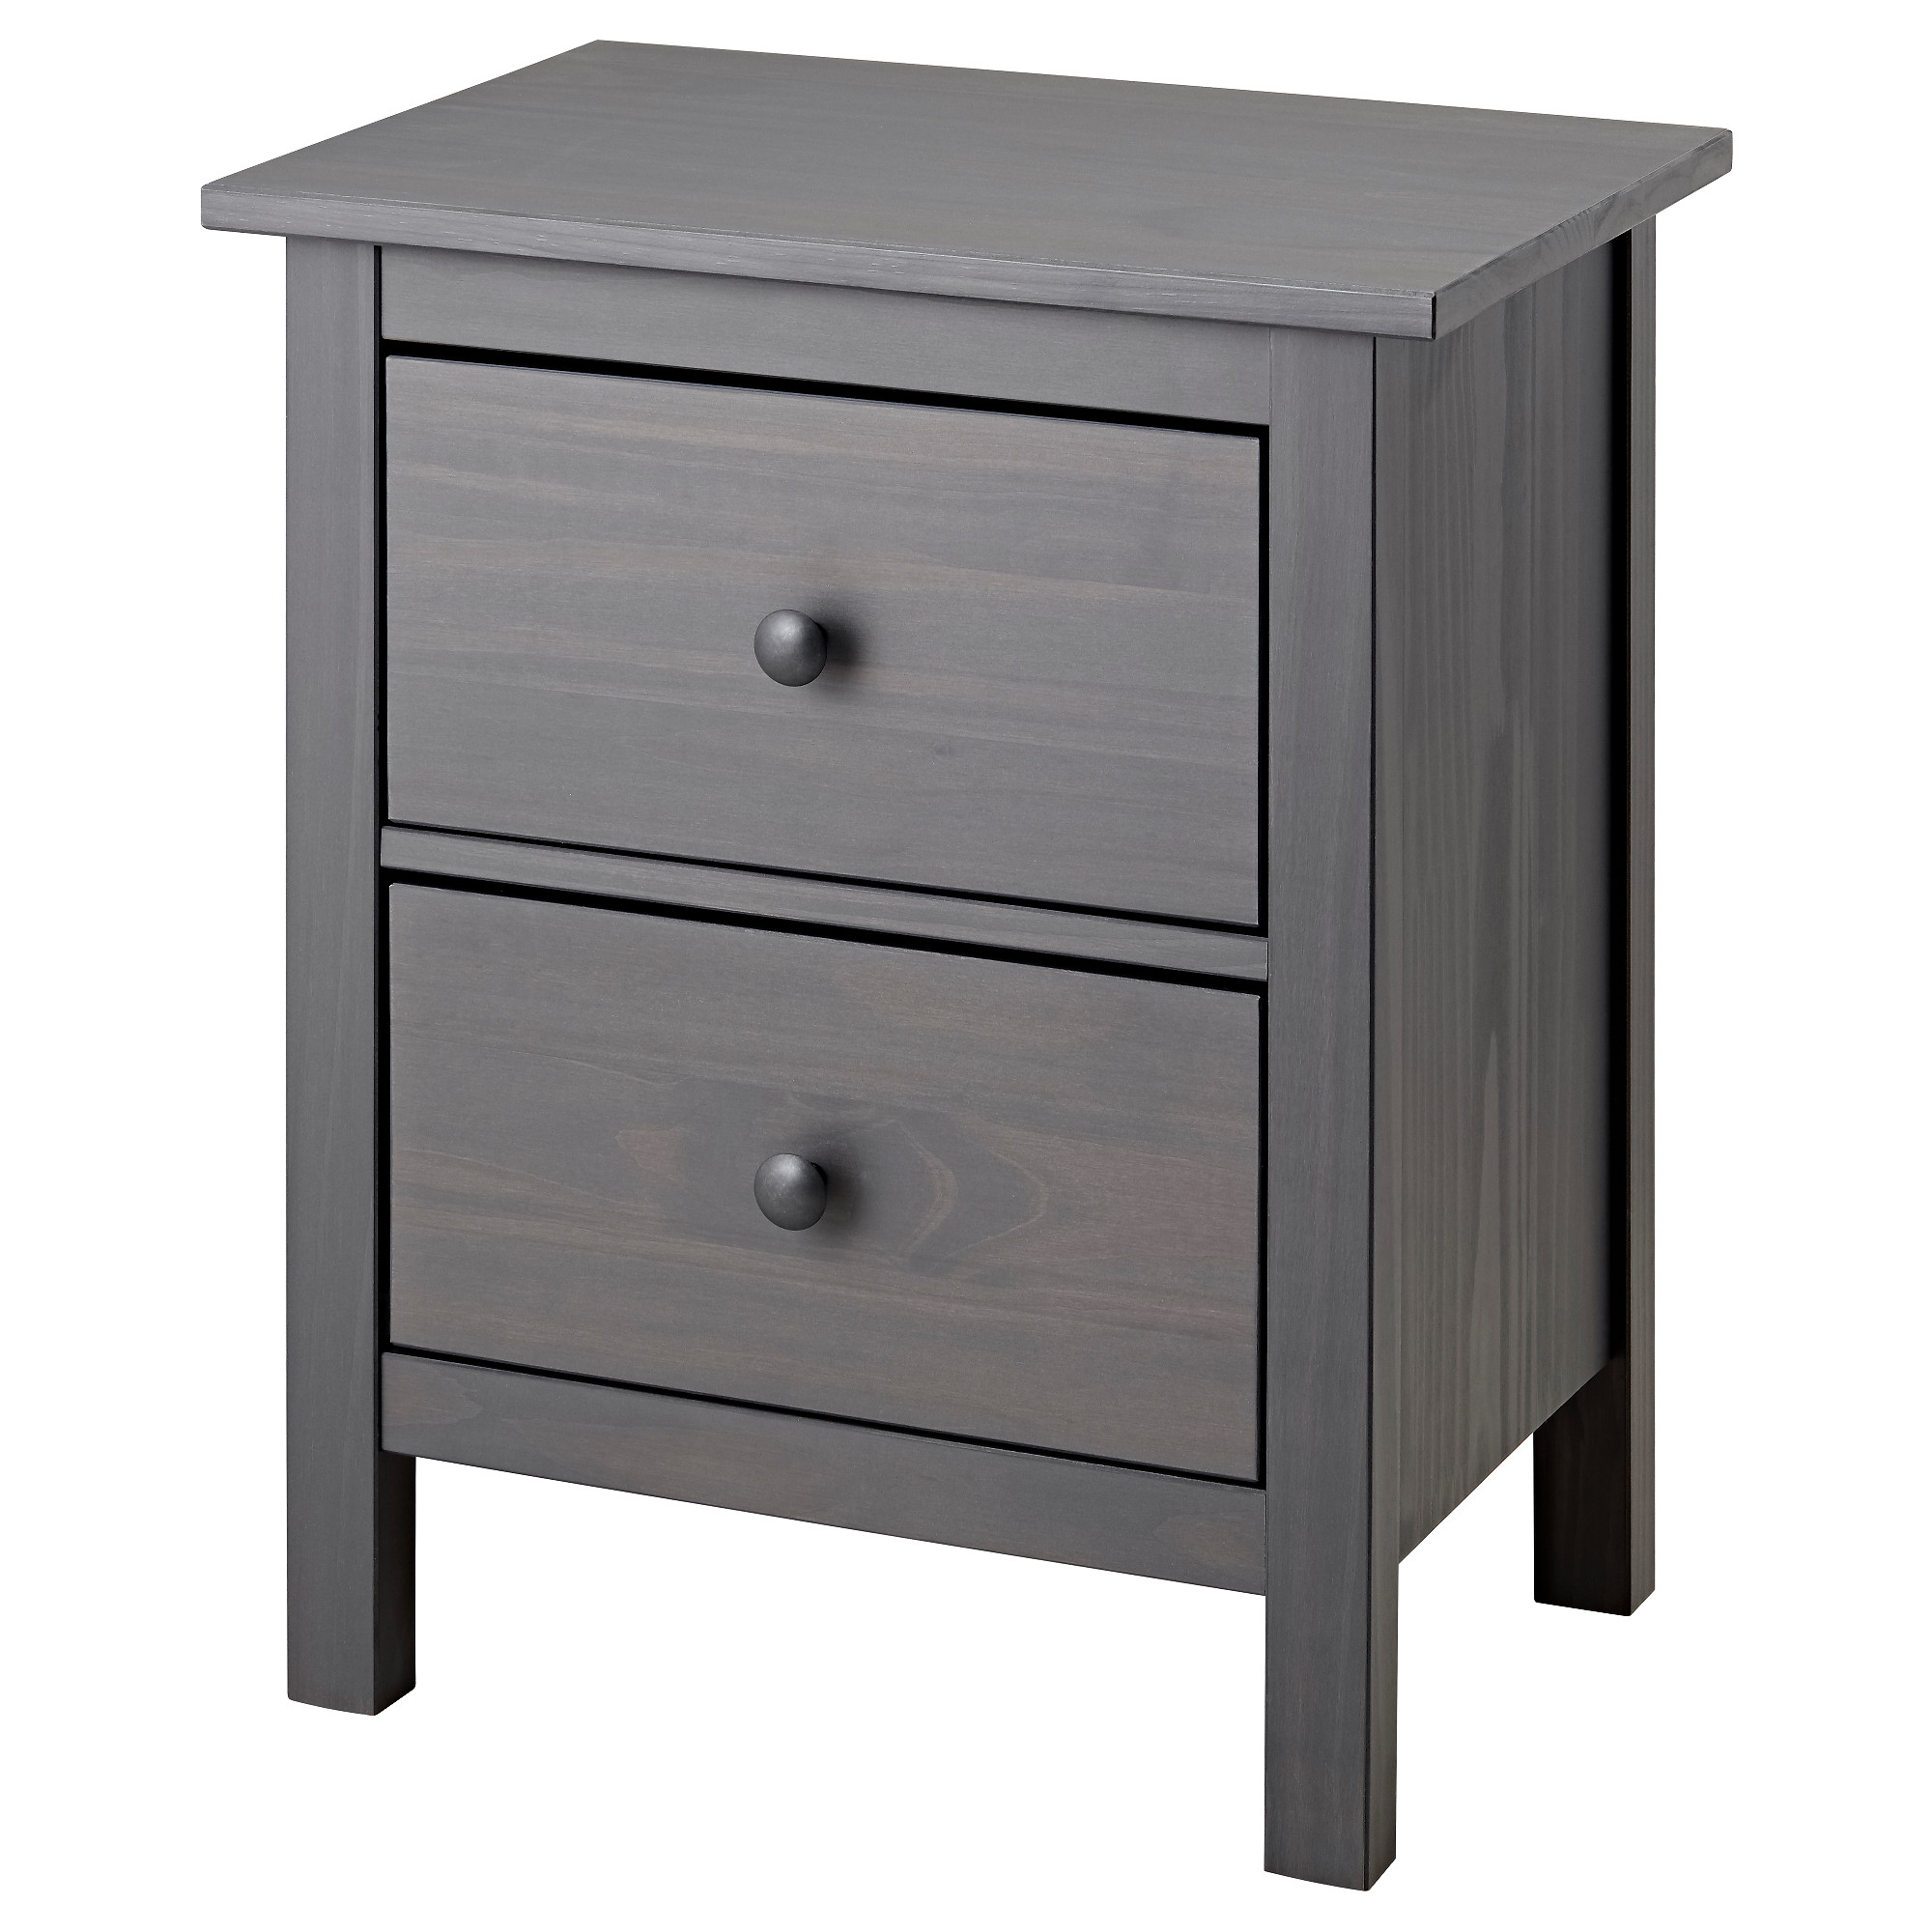 hemnes drawer chest  dark gray stained  ikea - inter ikea systems bv     privacy policy